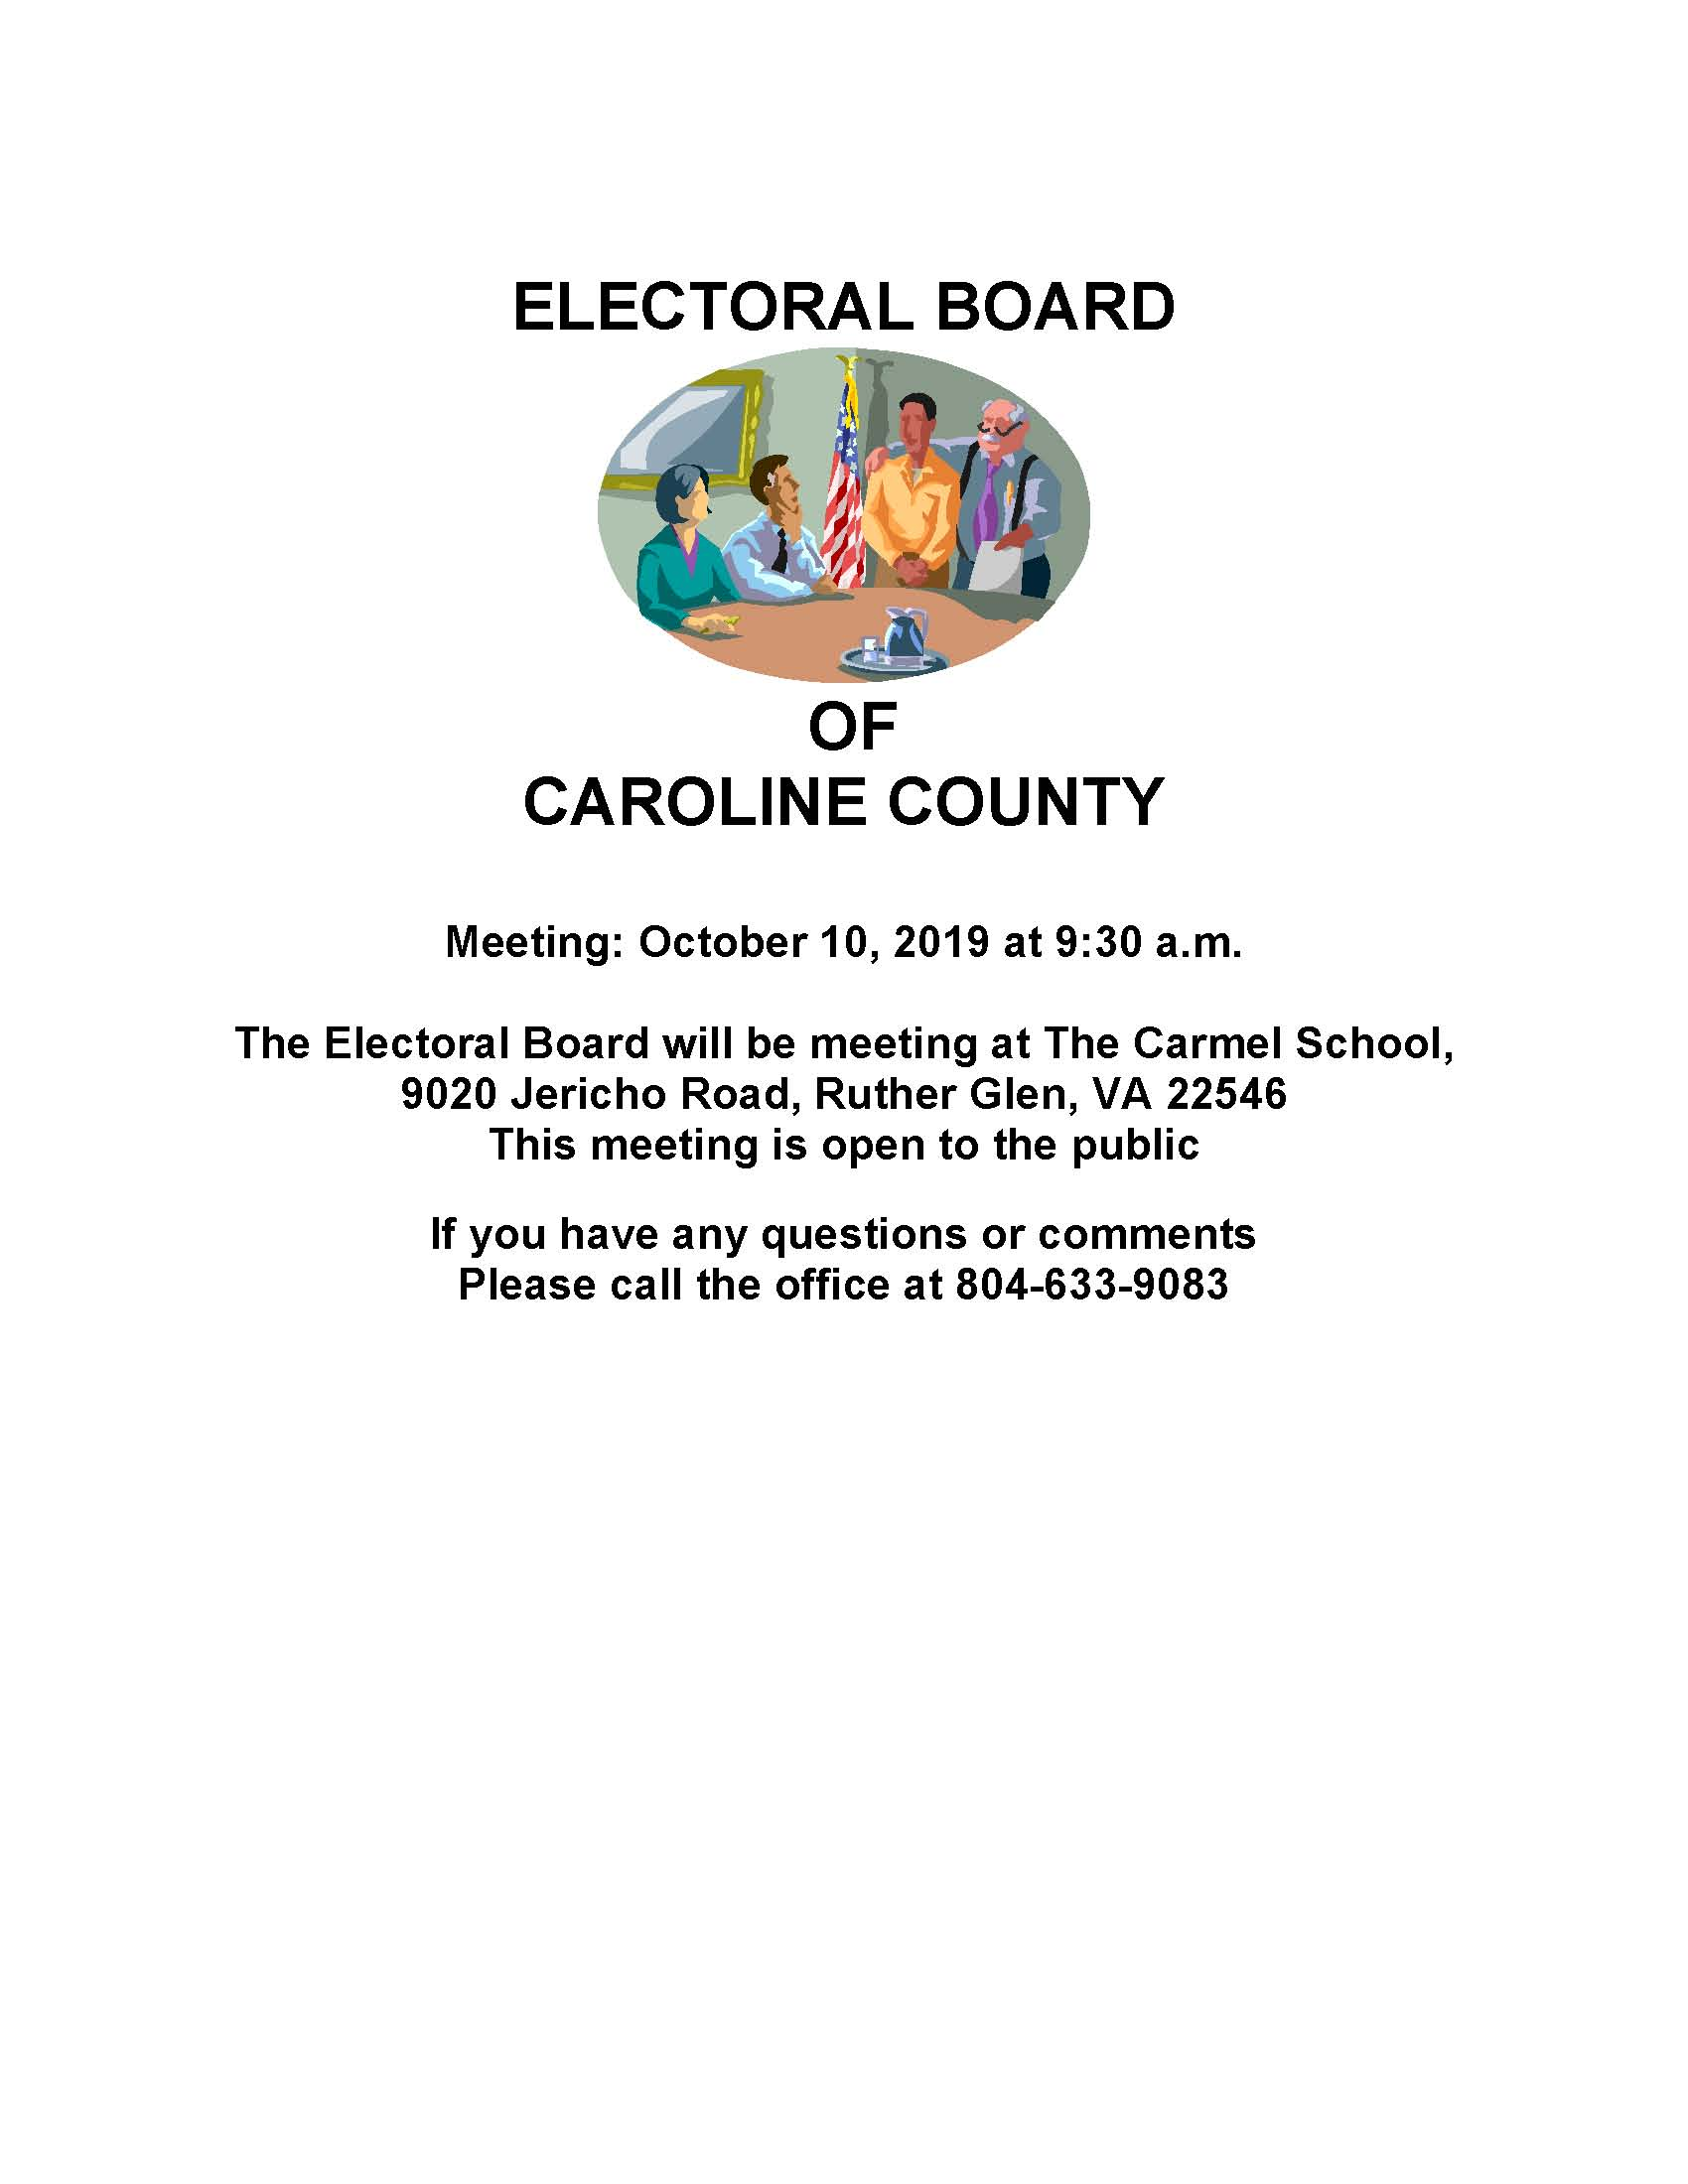 Electoral Board Meeting October 10, 2019